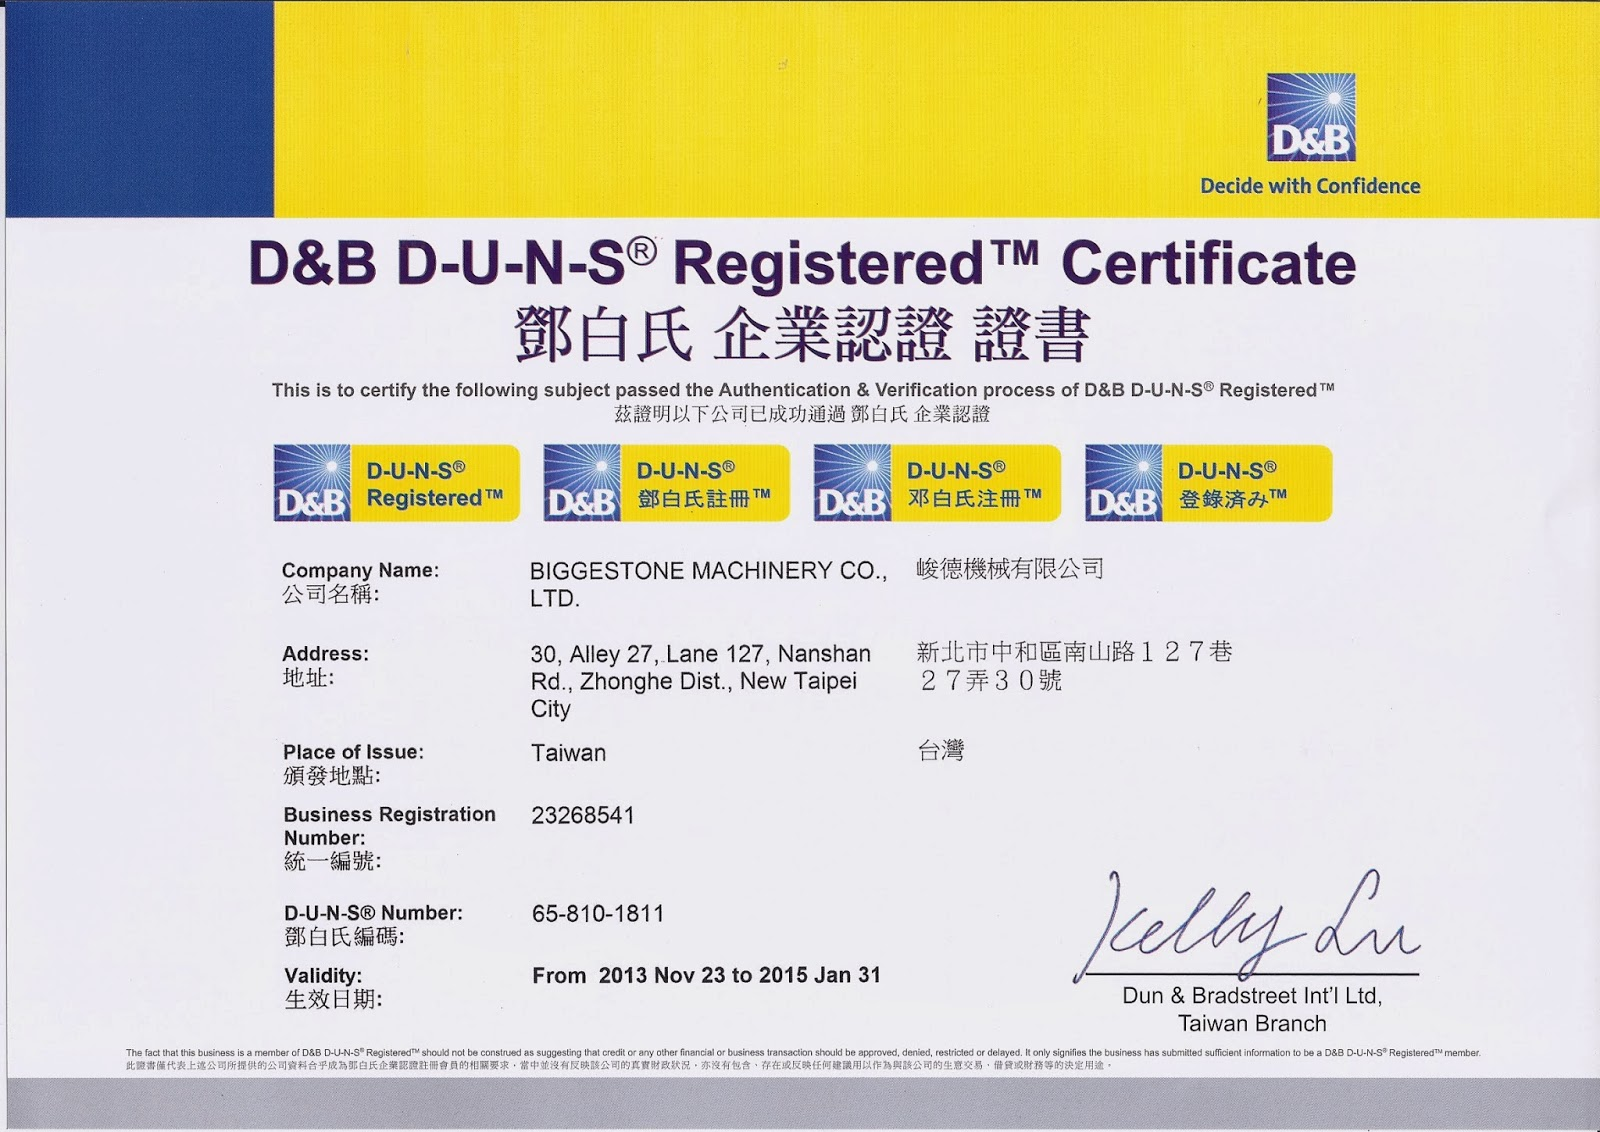 Dun & Bradstreet Int'l Ltd.  BIGGESTONE MACHINERY CO LTD <-- BRIDGESTONE